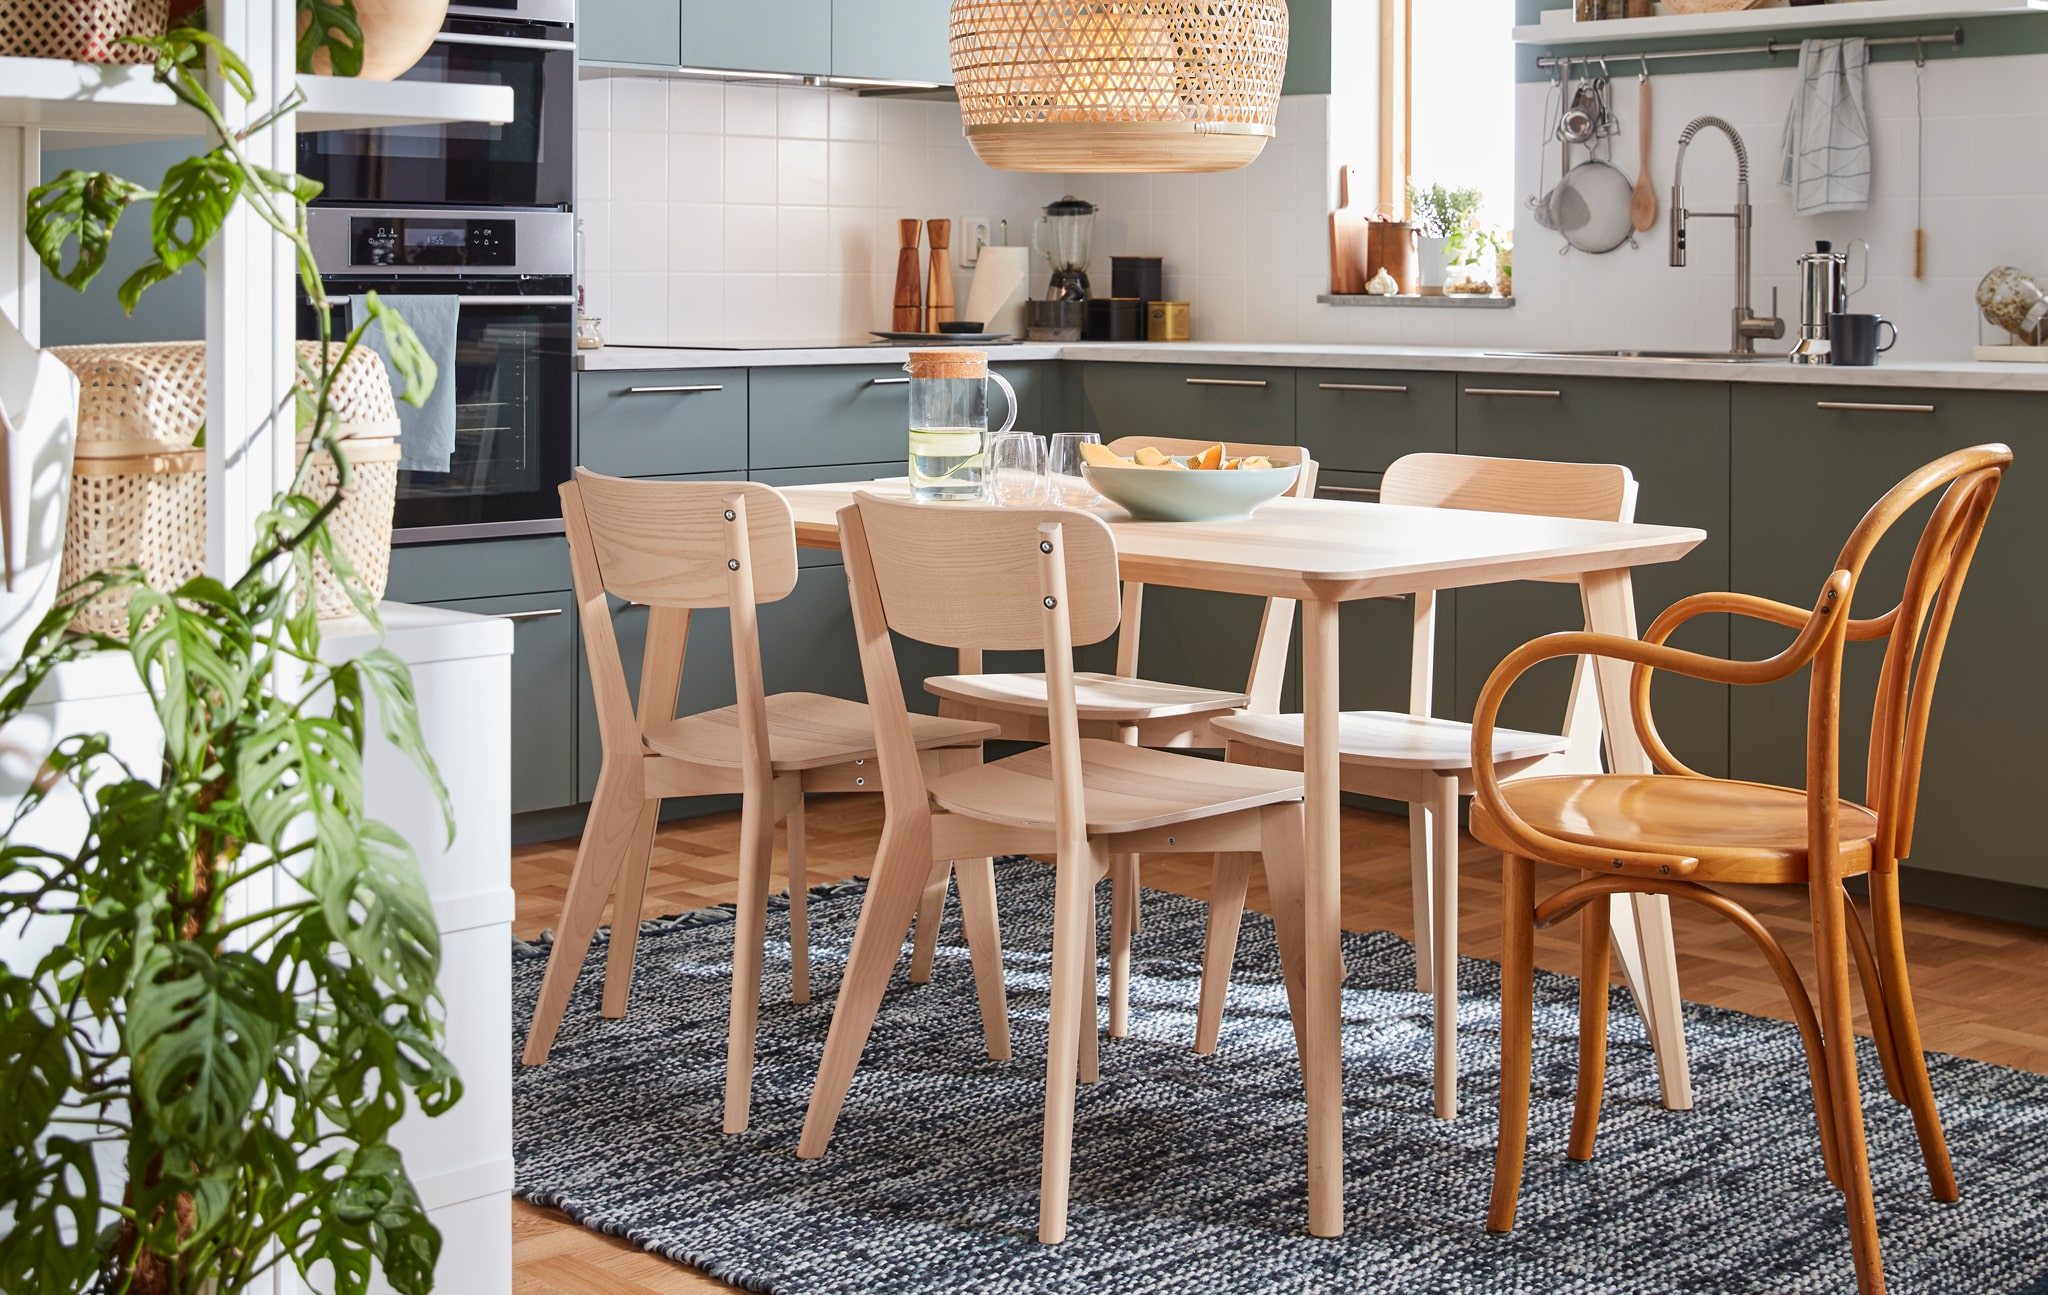 A kitchen with an IKEA chair from the 60's, a dinner table and four chairs from the LISABO series made from birch wood.